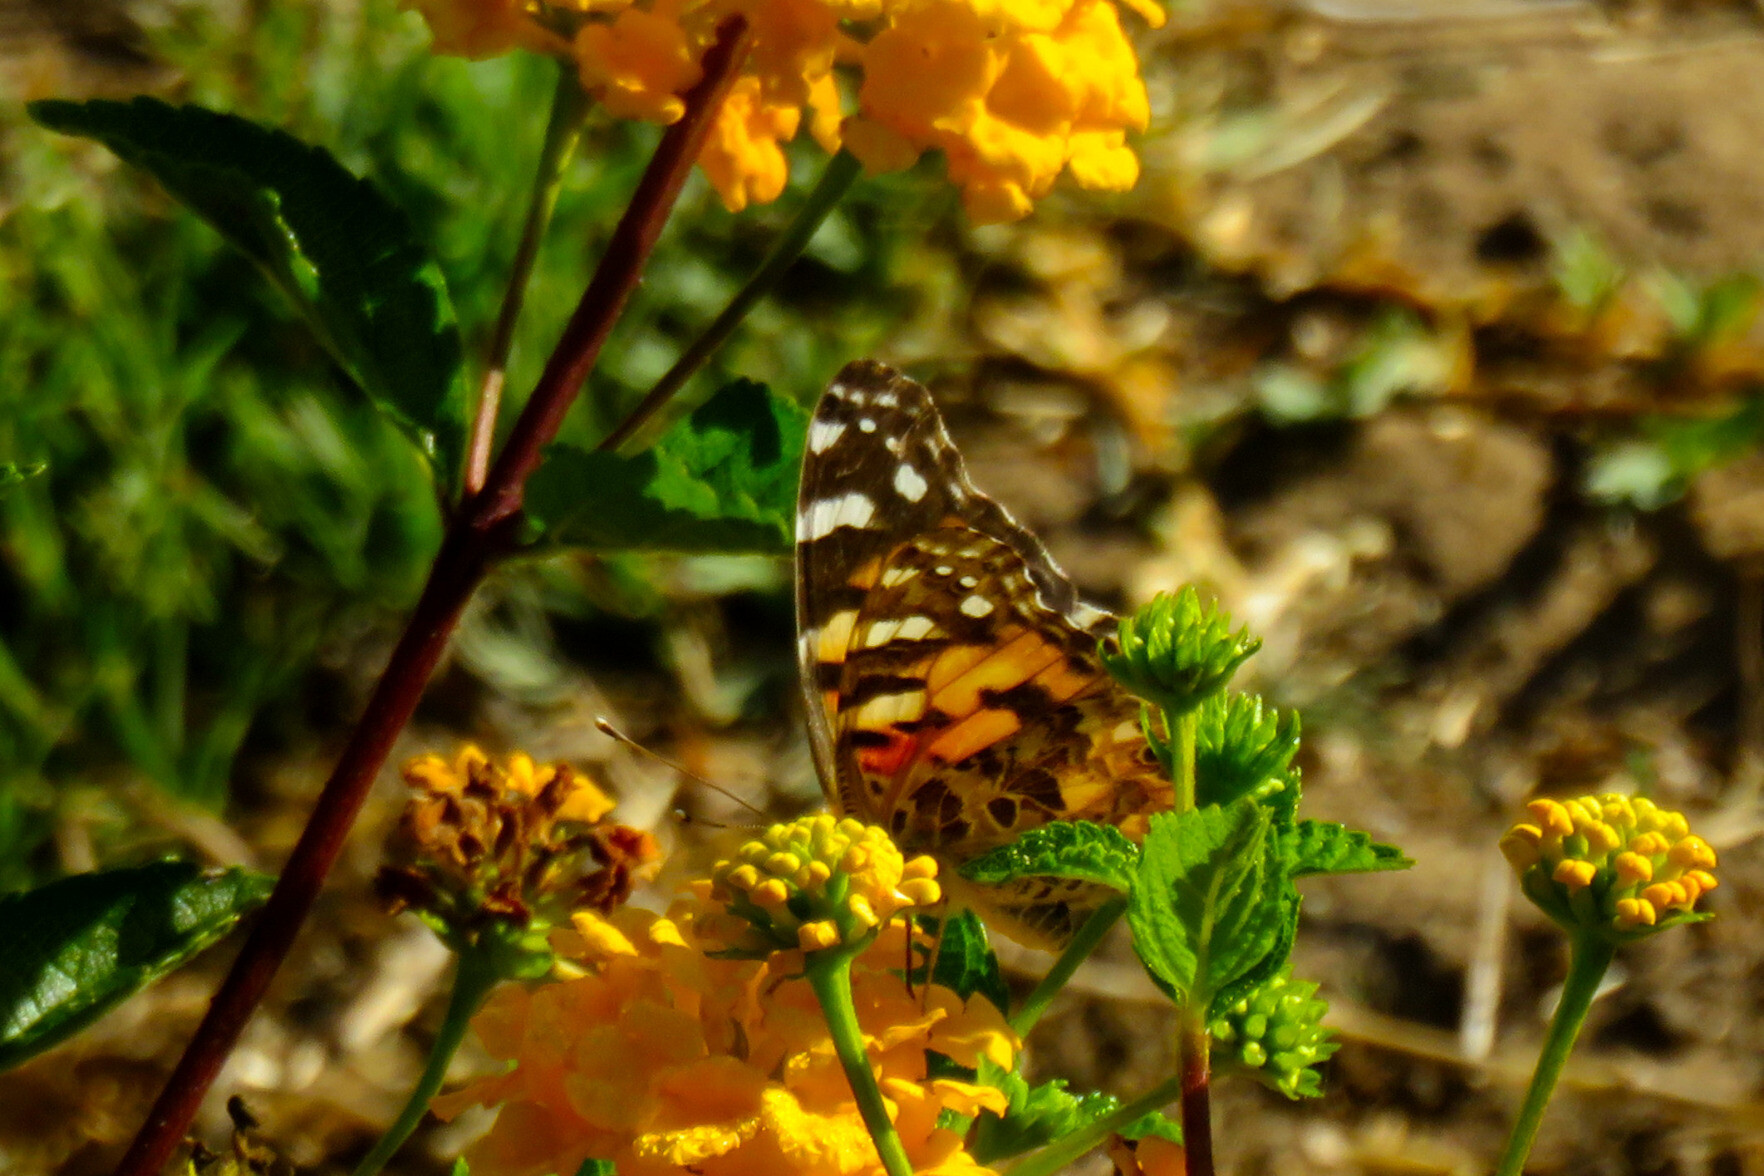 A painted lady (or related) #butterfly seen while out walking today.#photo #nature